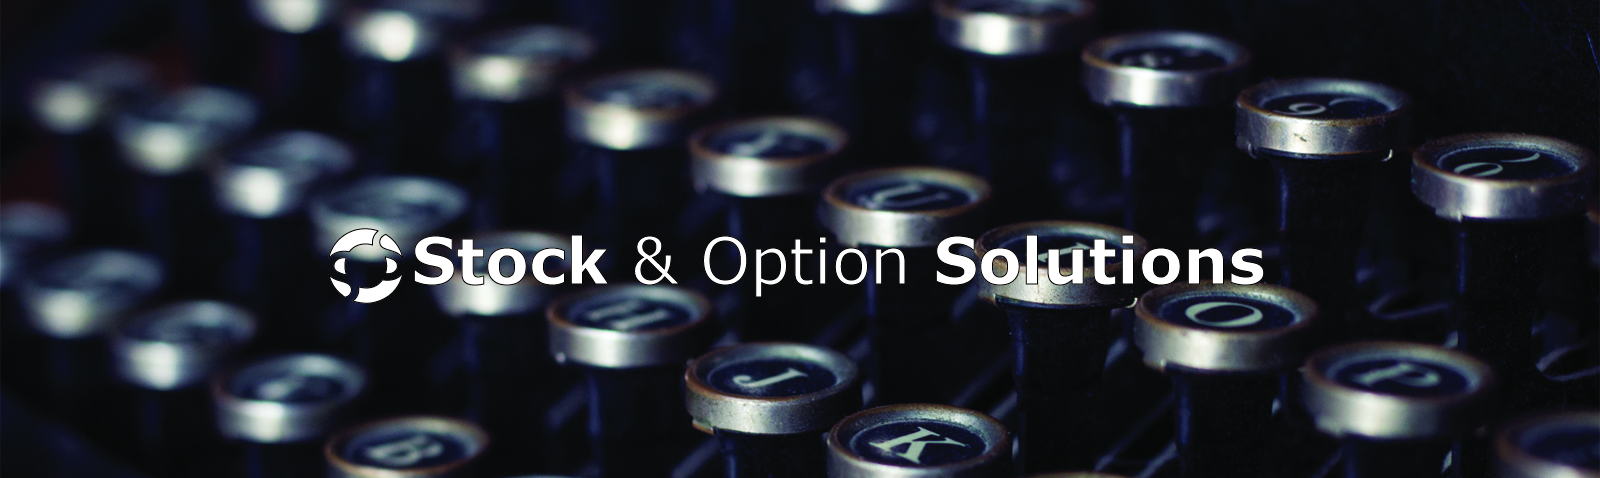 Stock options solutions inc